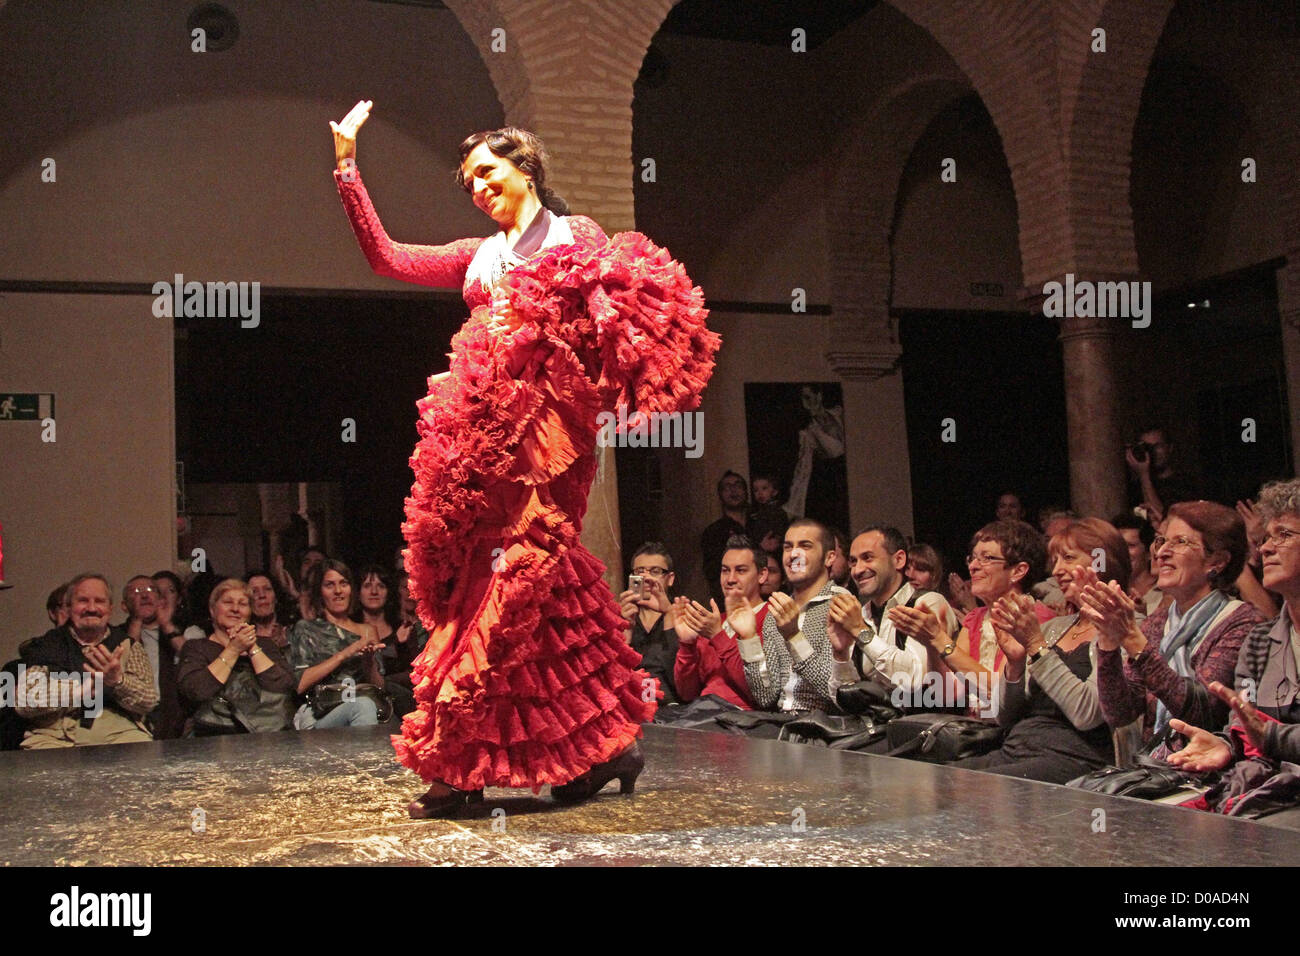 Flamenco performance museo del baile flamenco flamenco for Espectaculo flamenco seville sevilla